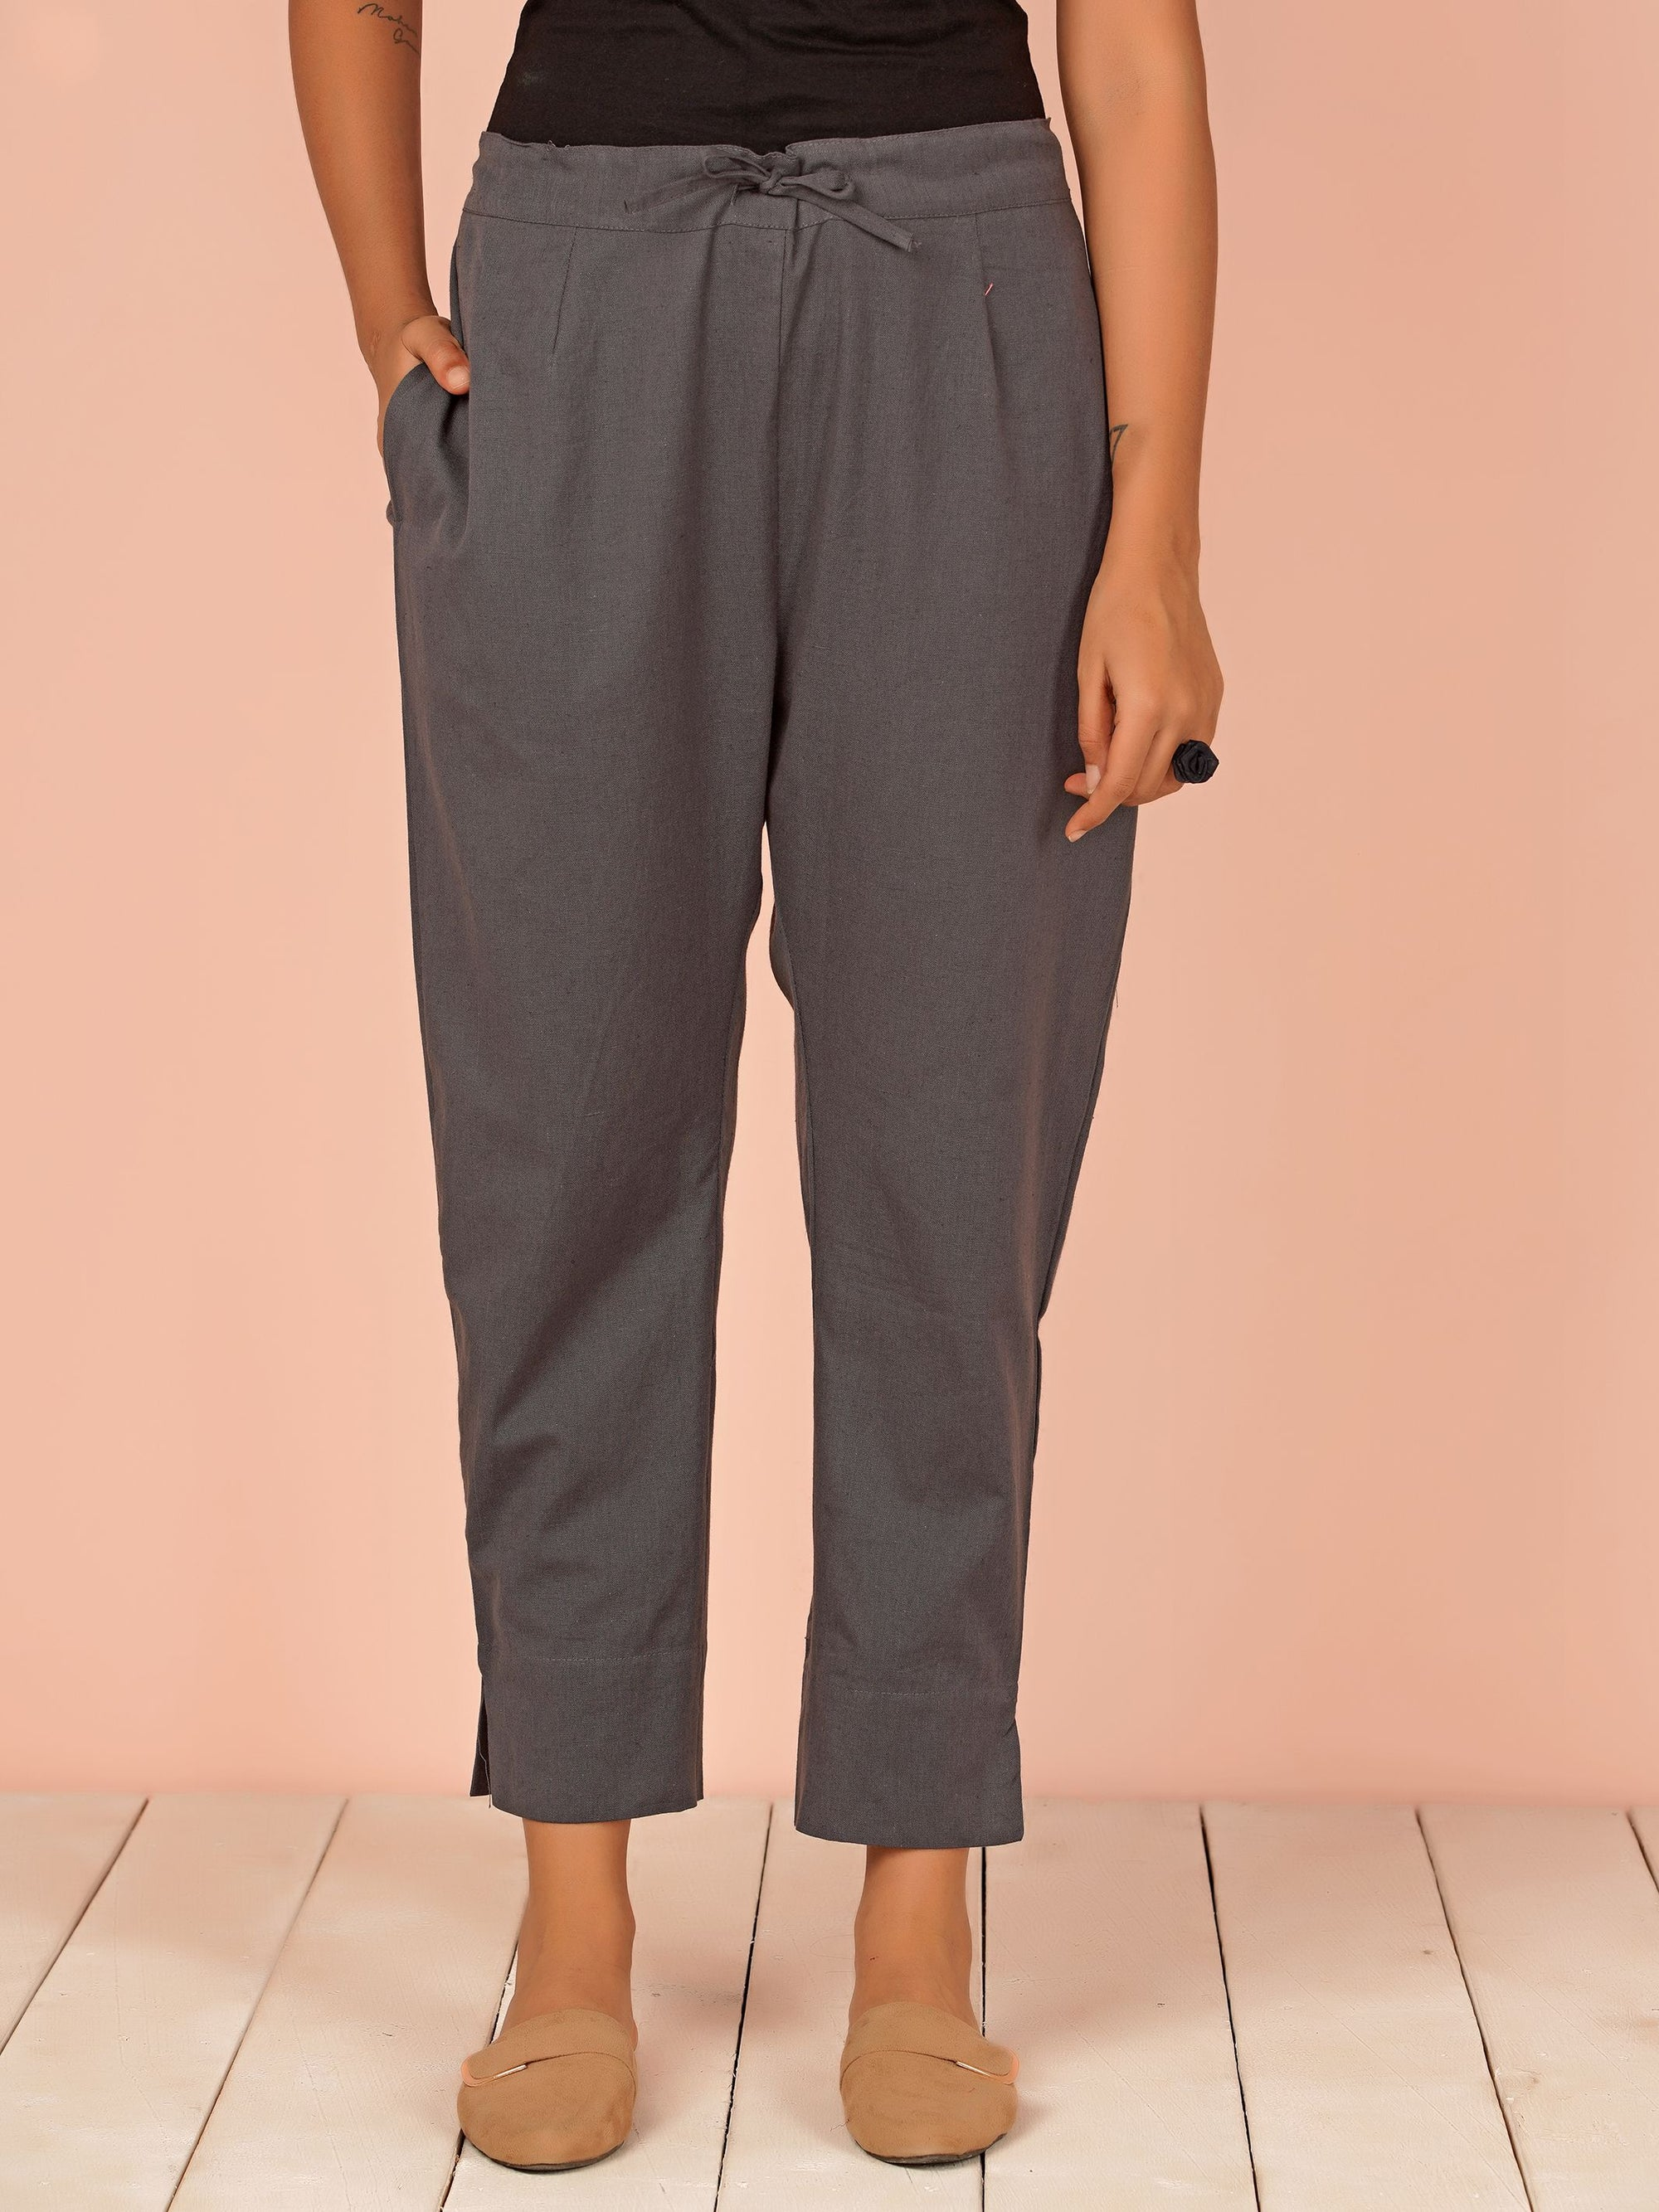 Tapered Cigarette Pants - Dark Grey